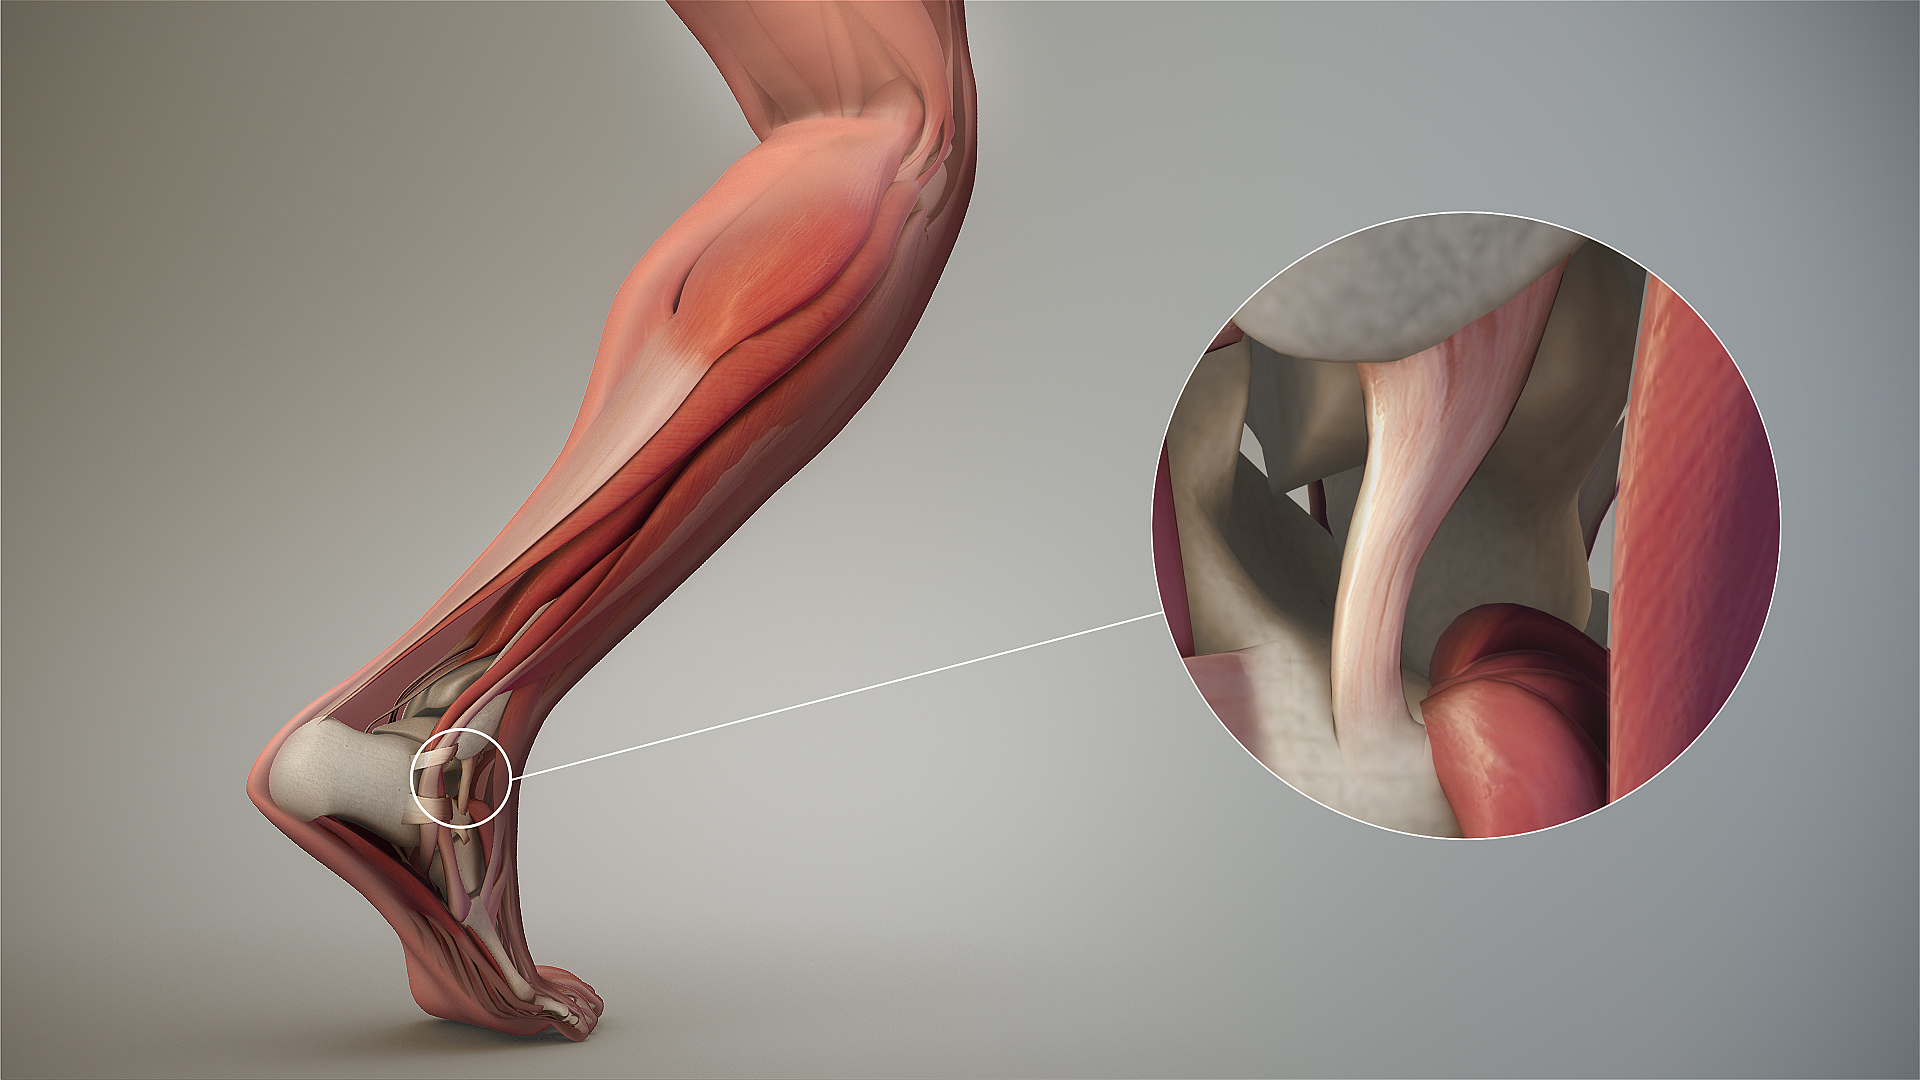 image source: https://en.wikipedia.org/wiki/Ligament